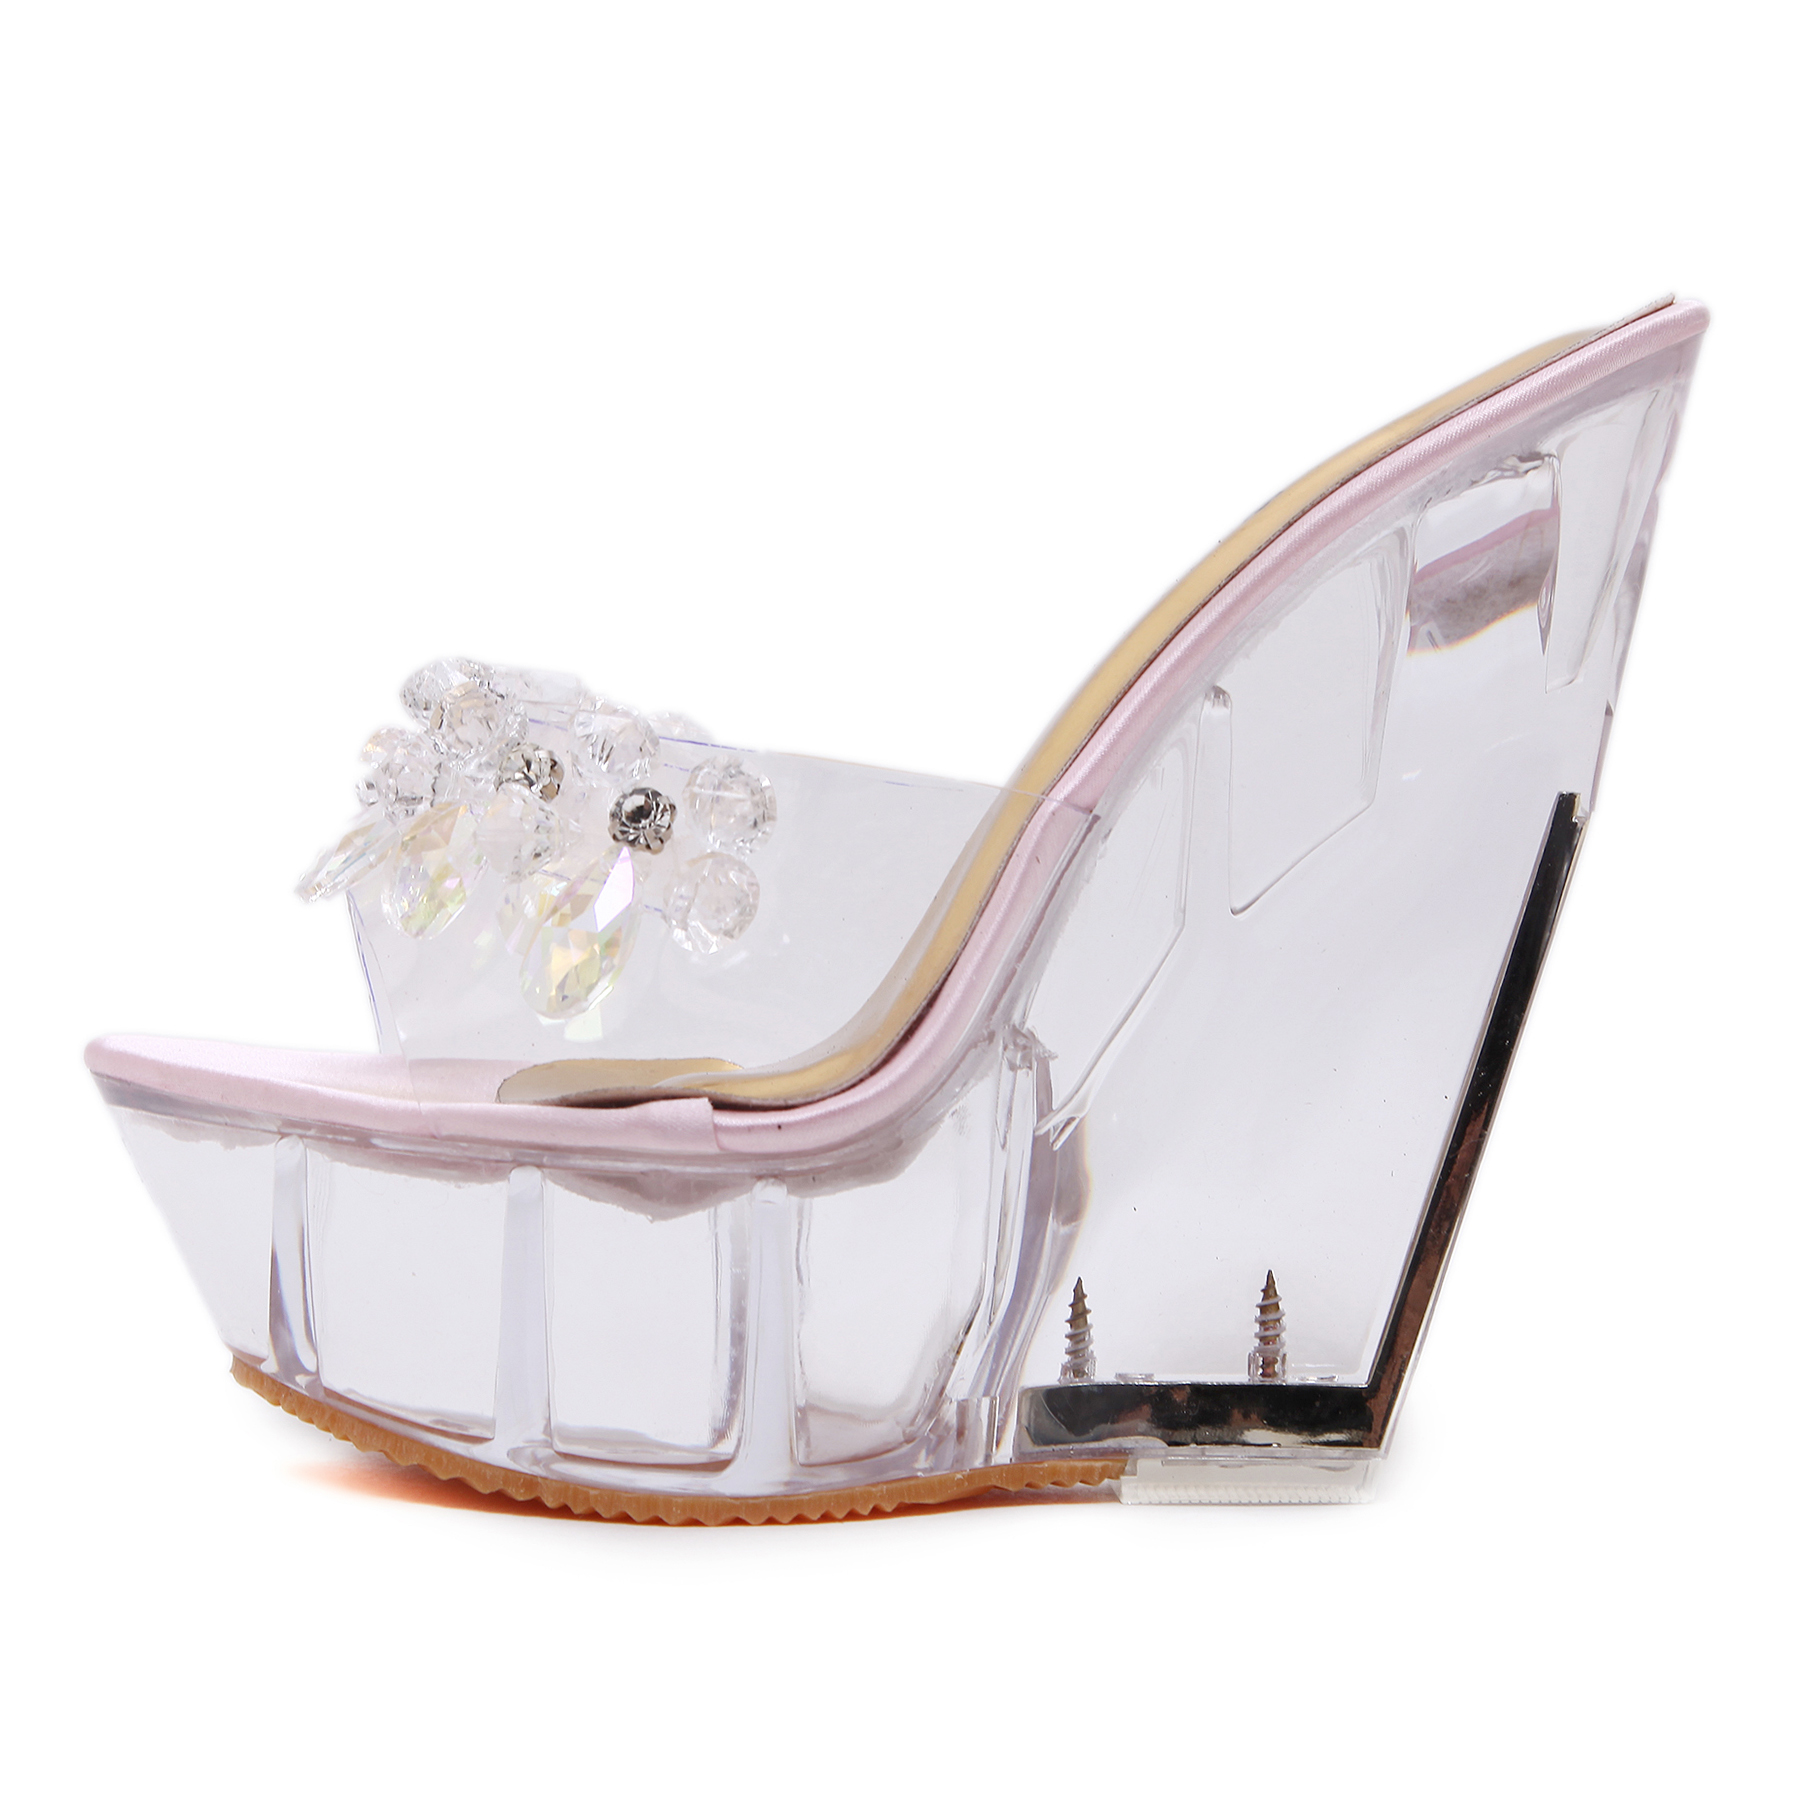 0db59ef4a2fb36 US  45 - 2018 summer sexy high heels 15cm Crystal heel sandals platform  clear wedges sandals fashion shoes women slippers - www.ardenfurtado.com